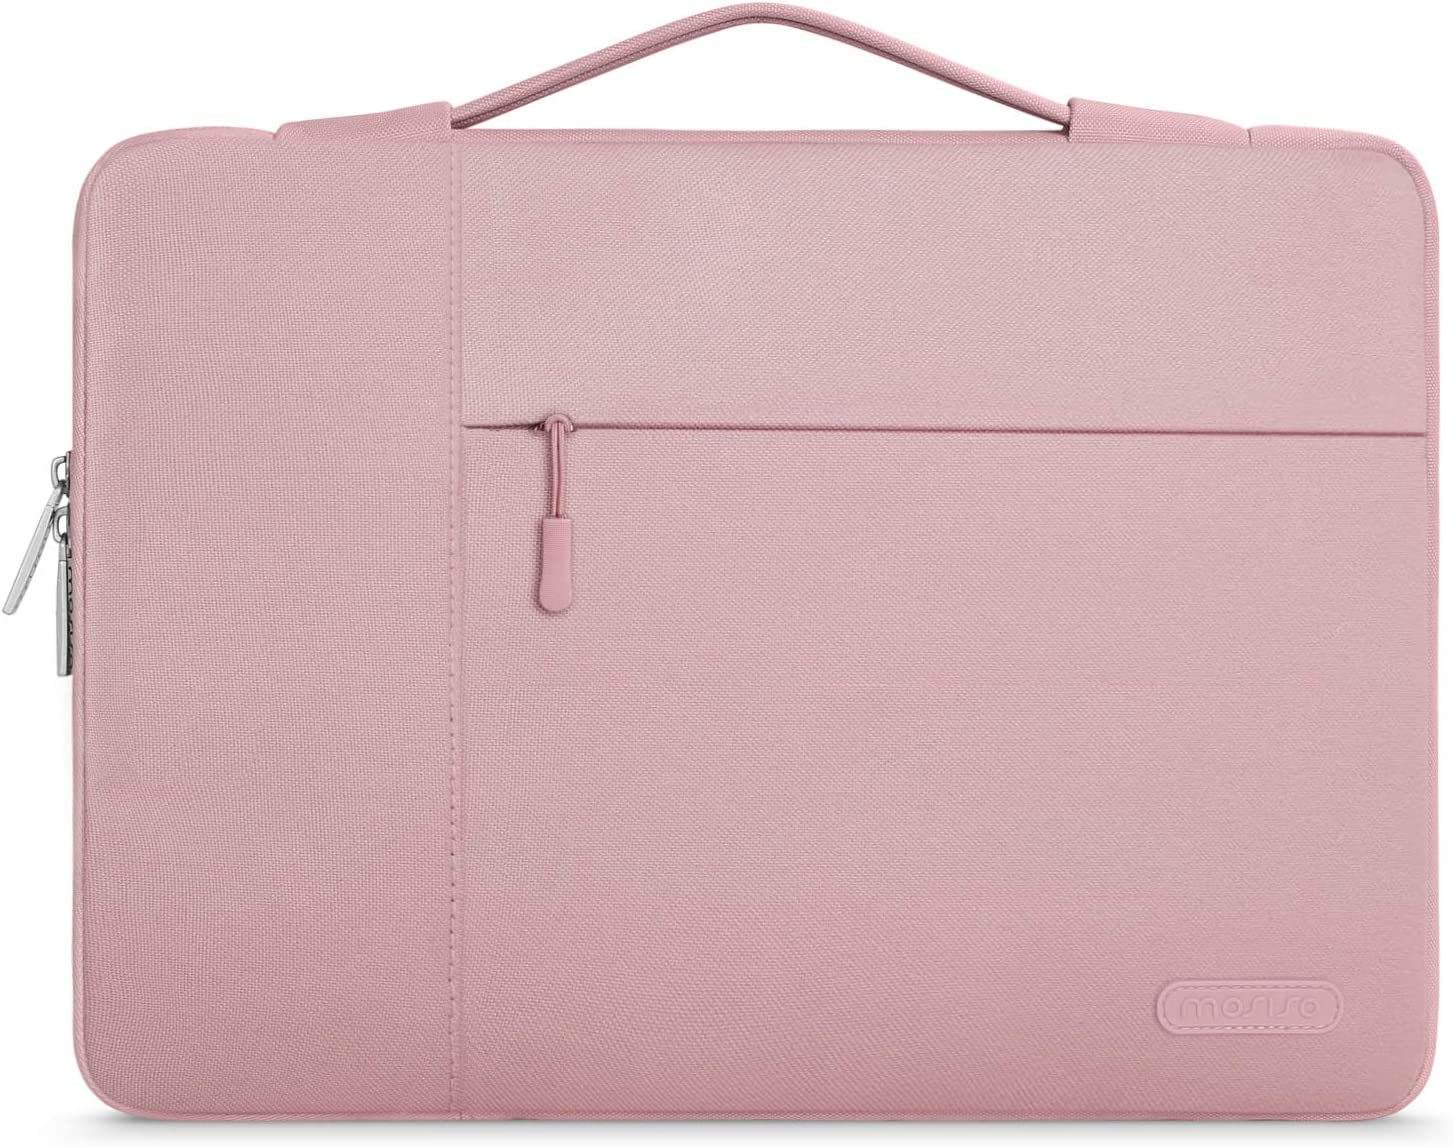 MOSISO Laptop Sleeve Case with Corner Protection Compatible with 13-13.3 inch MacBook Pro, MacBook Air, Surface Laptop 3/2/1 13.5, Lenovo Dell Toshiba HP ASUS Acer, Polyester Briefcase Bag, Pink